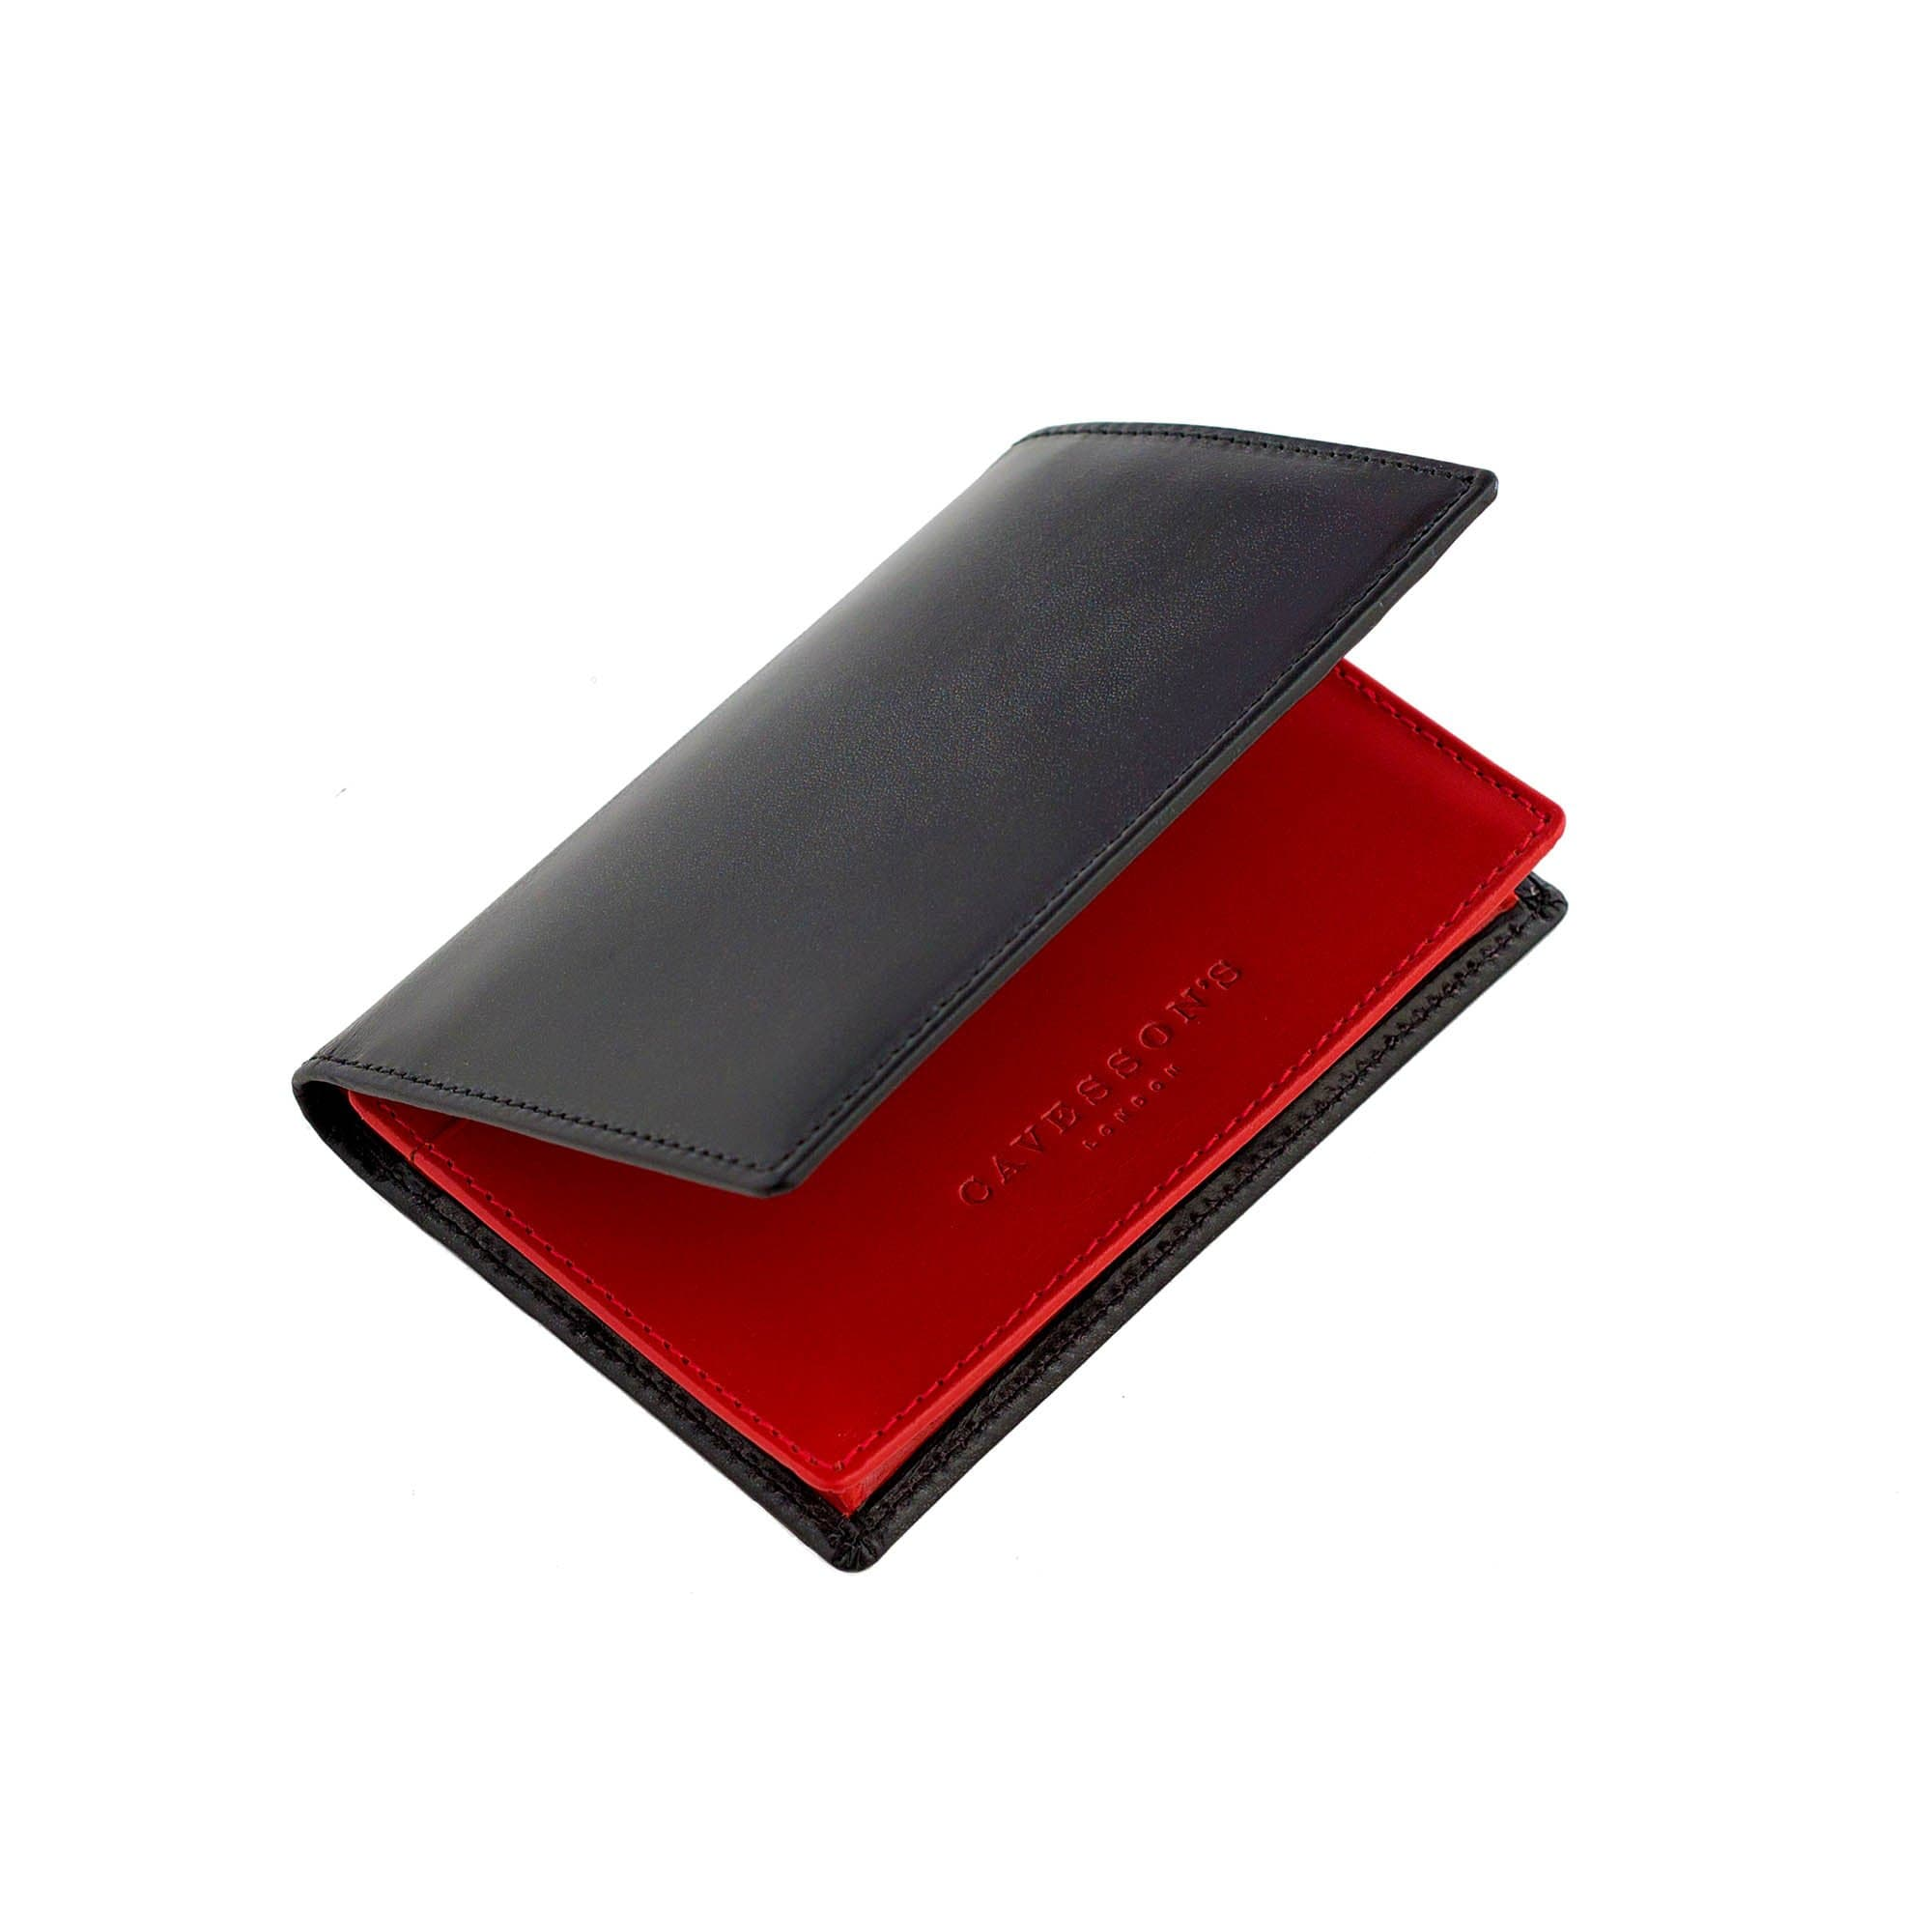 Cavesson's - Wallet - CANDOVER CARD WALLET BLACK/RED - Bortex Fine Tailoring